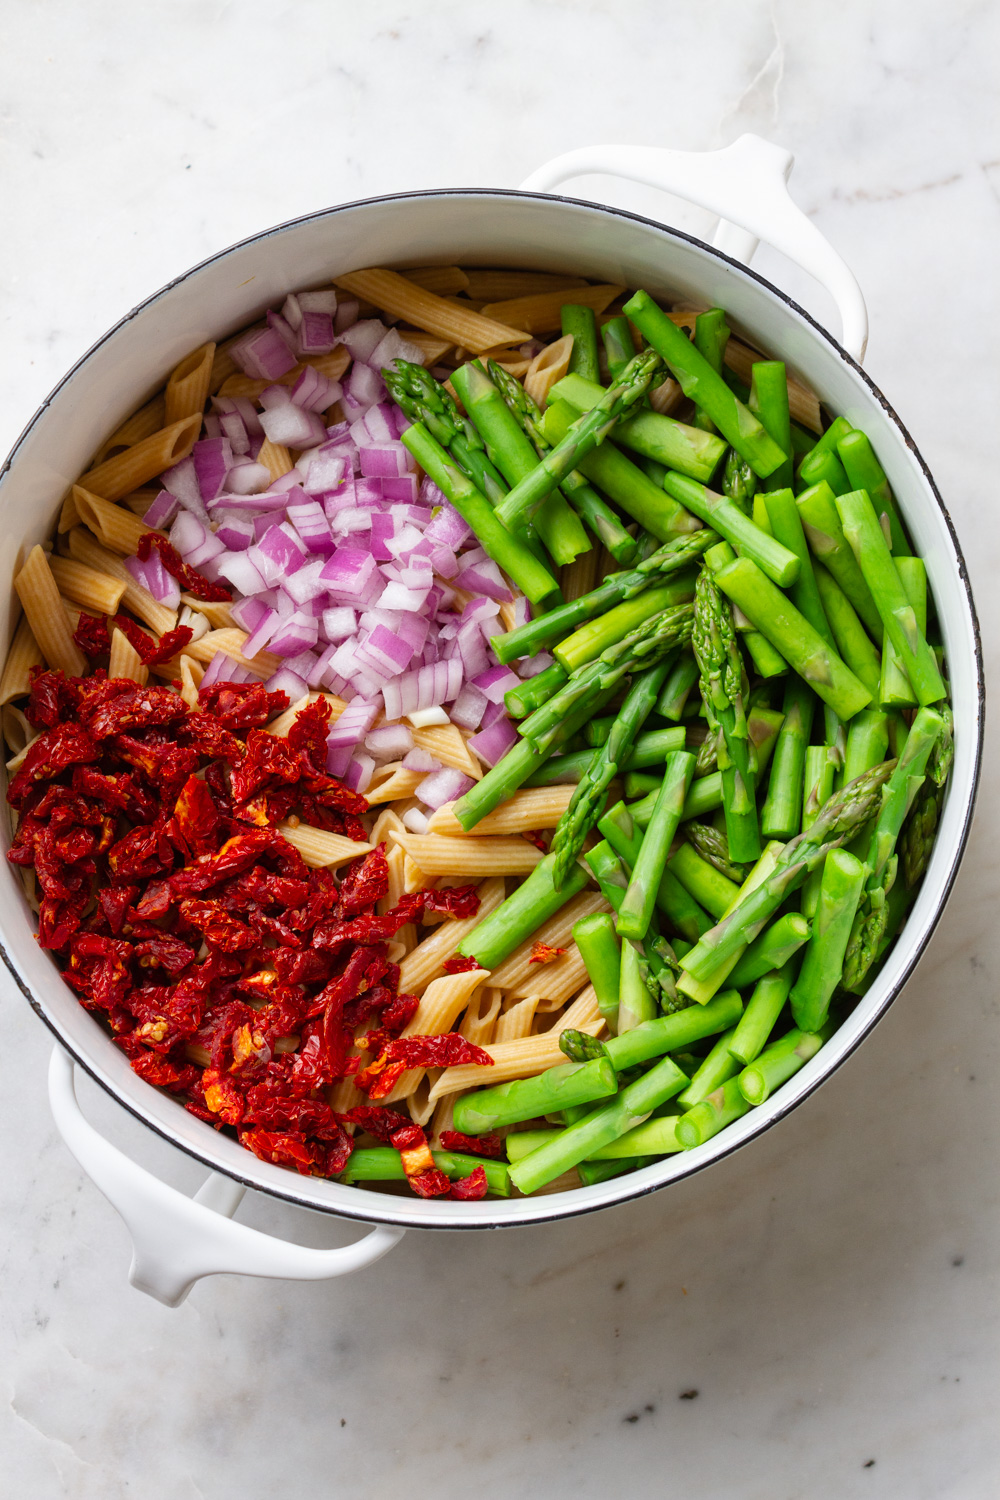 top down view of freshly cooked whole grain pasta with asparagus, sun-dried tomatoes, red onion, before adding the dressing and being mixed in a white pot